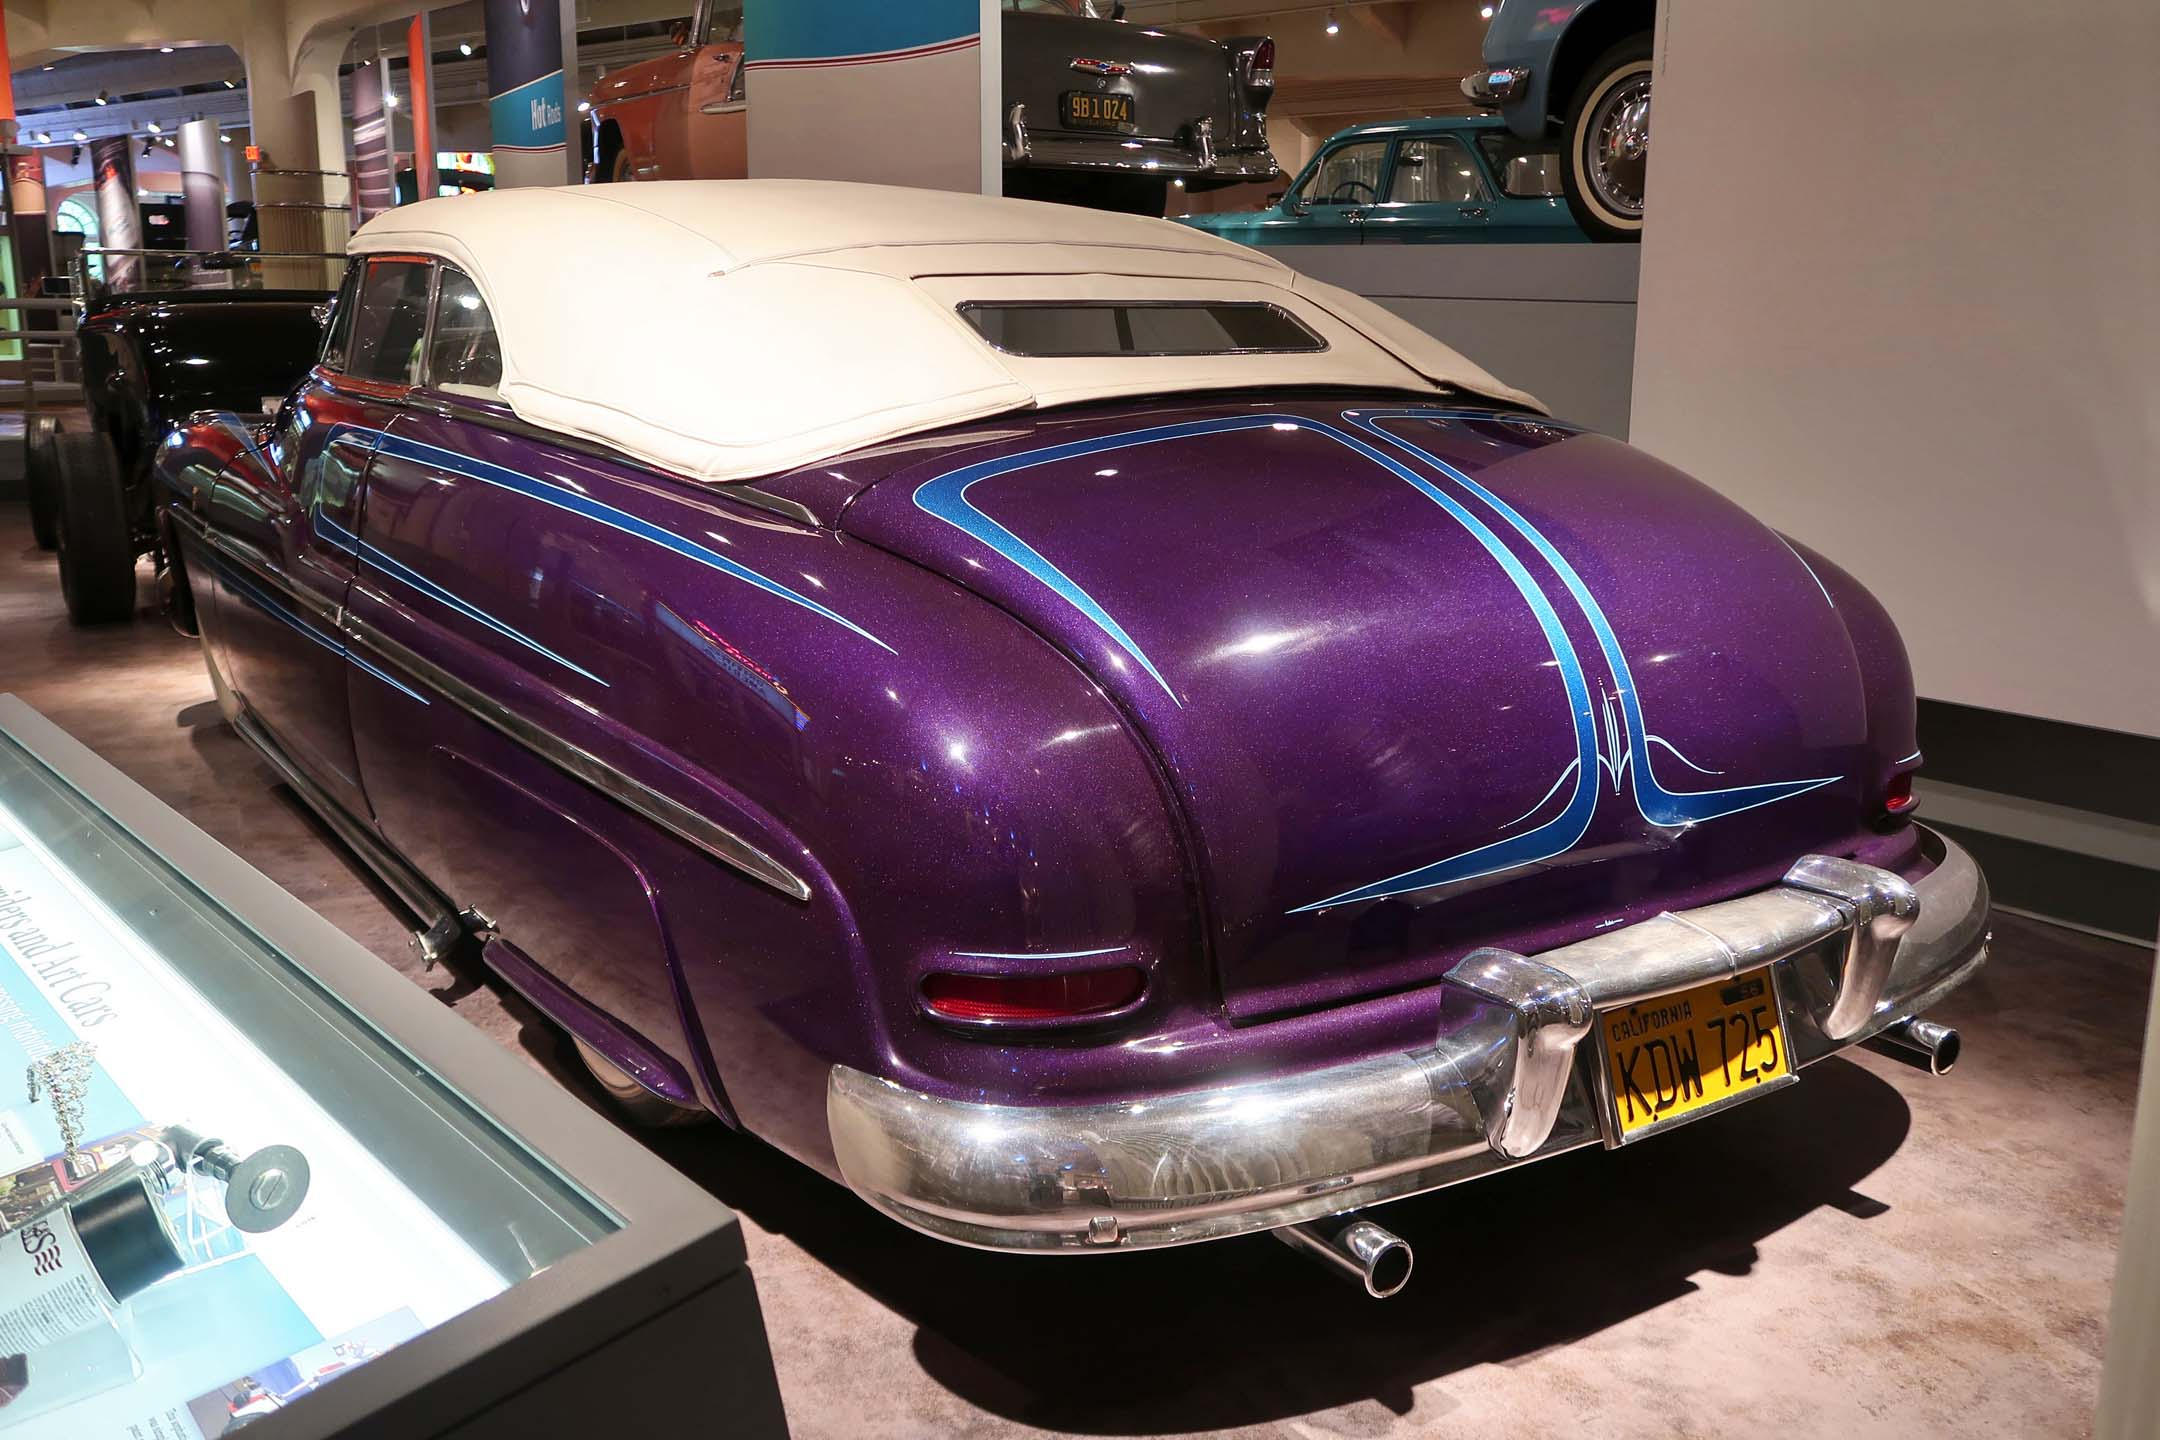 A 1949 Mercury customized by the late George Barris